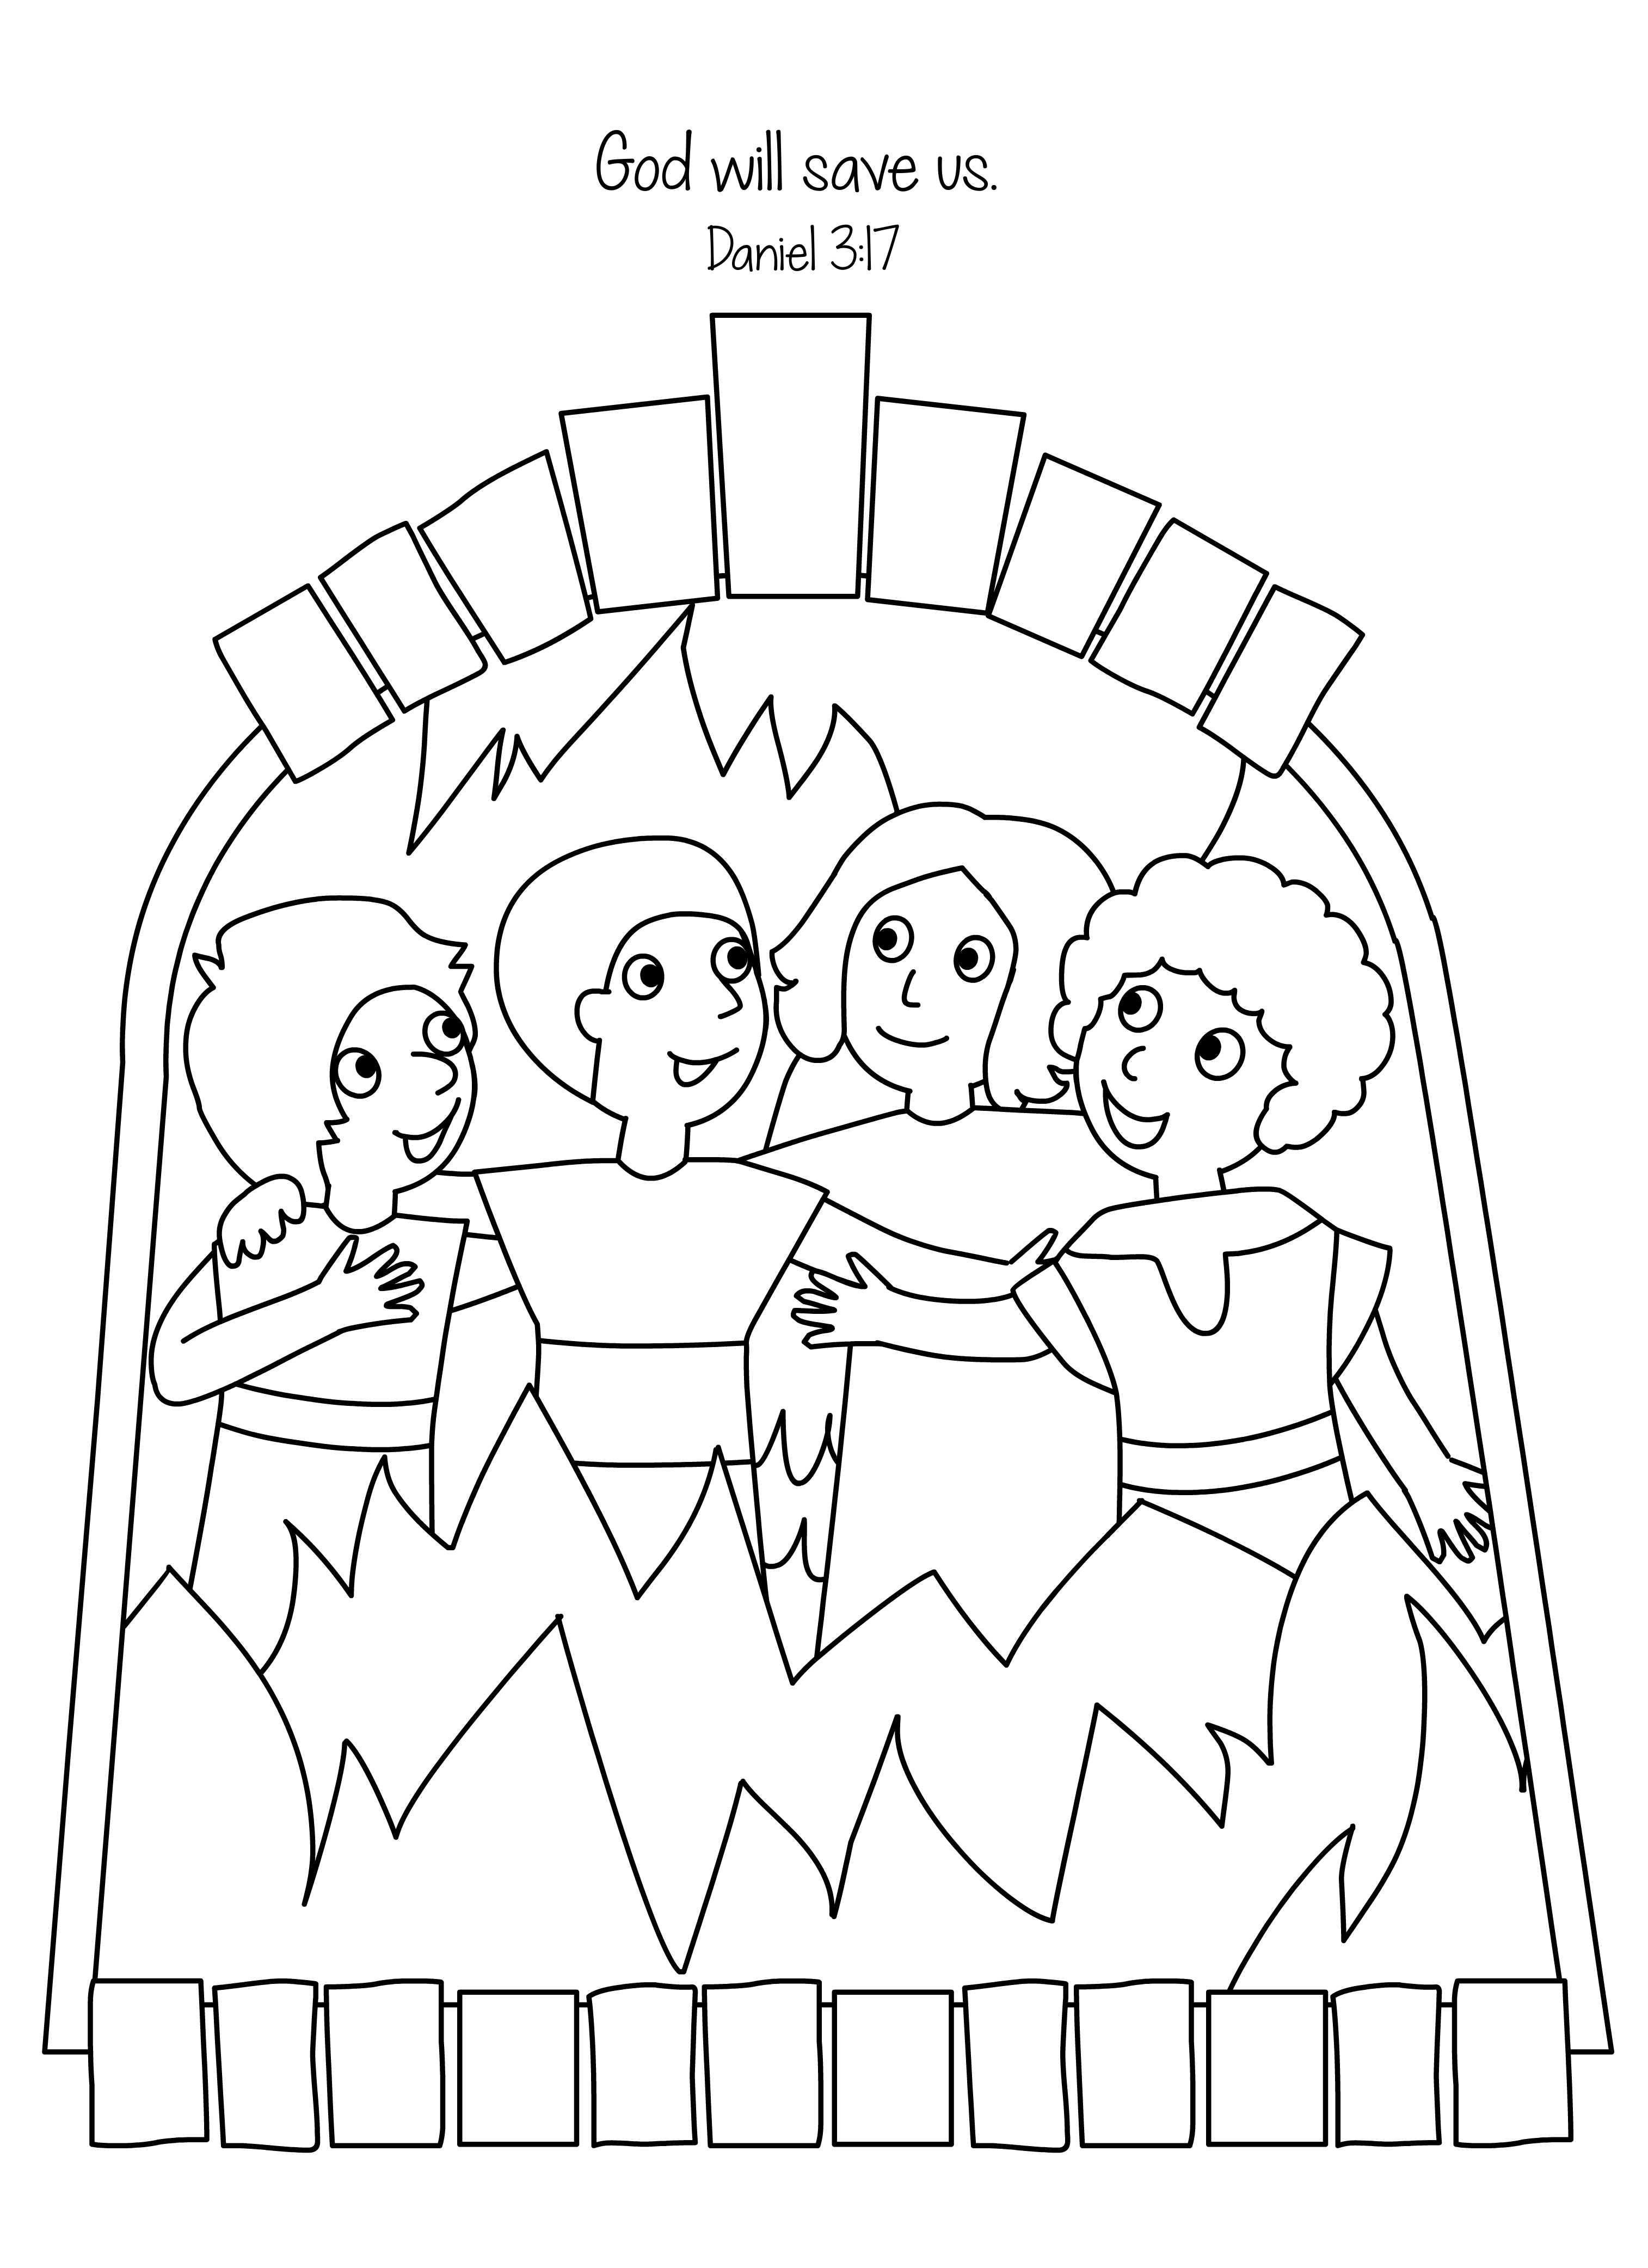 the fiery furnace with shadrach meshach and abednego kids autoshadrach meshach and abednego coloring page